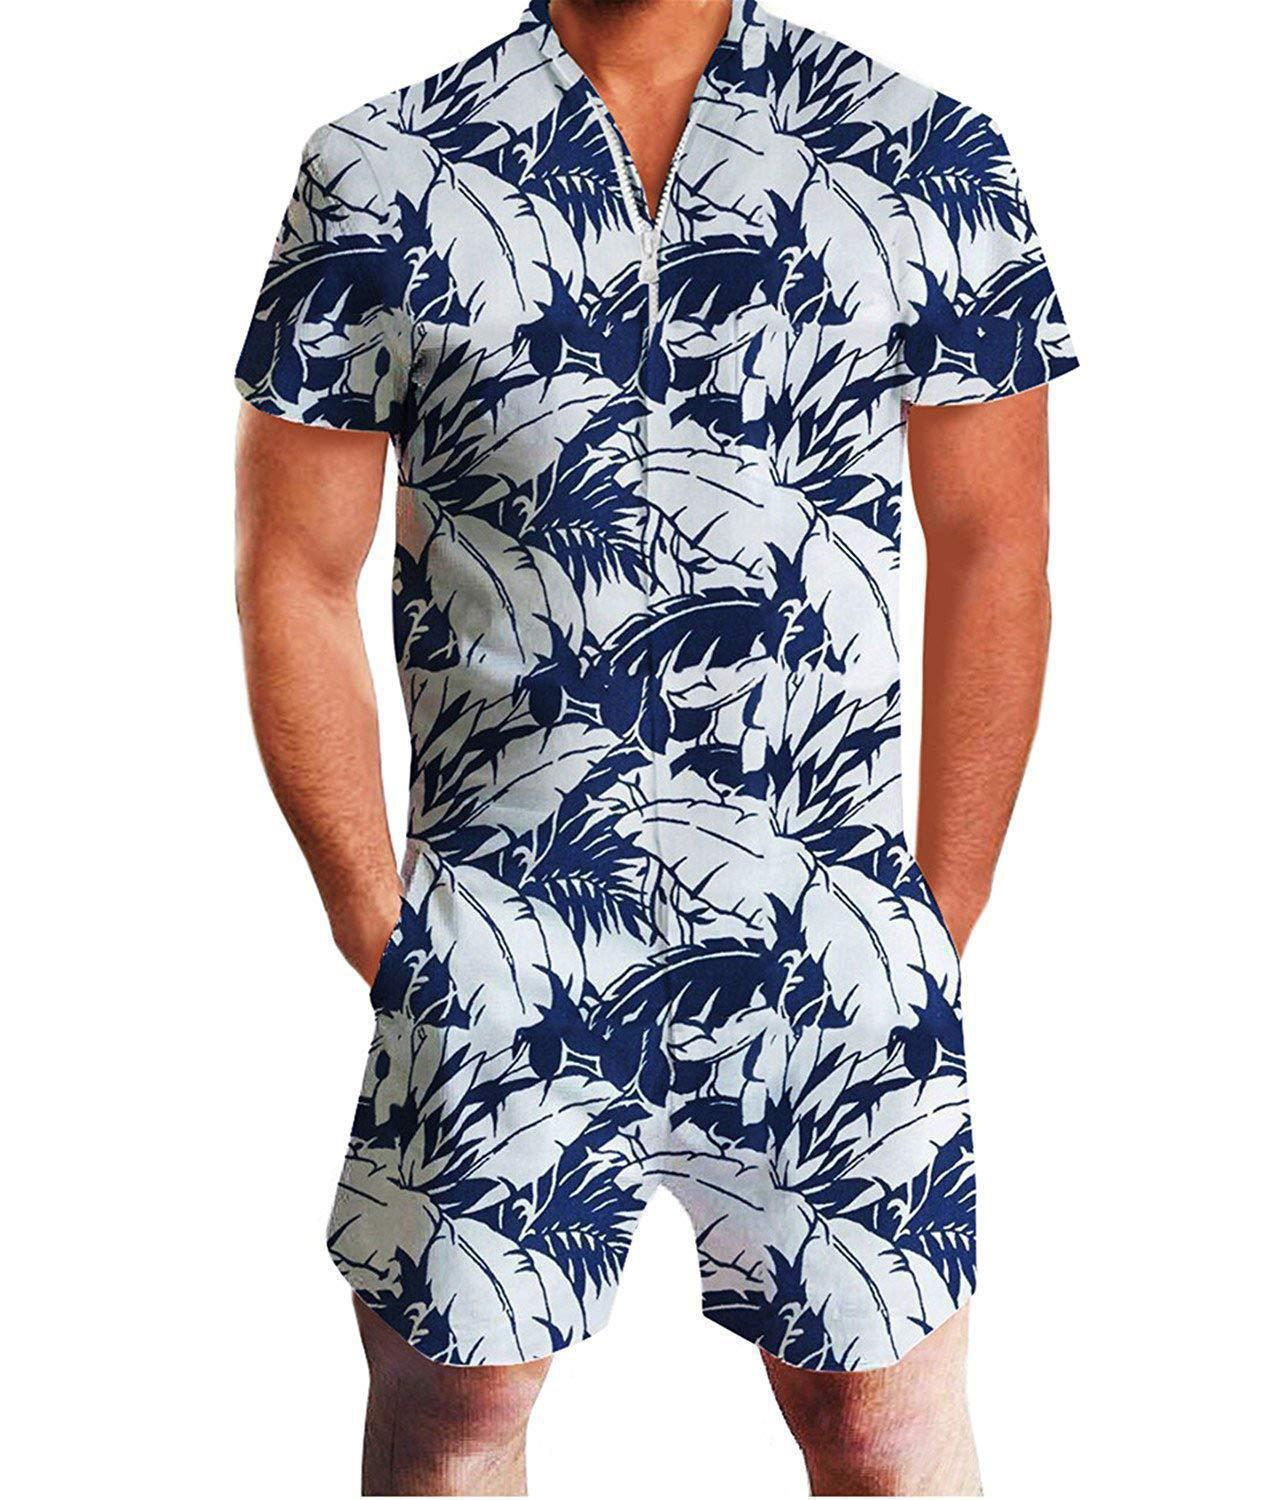 OLOEY Mens Leaves Printed One Piece Short Sleeve Zipper Rompers Summer Short Jumpsuit Overall Pants With Pocket  3D Male Romper